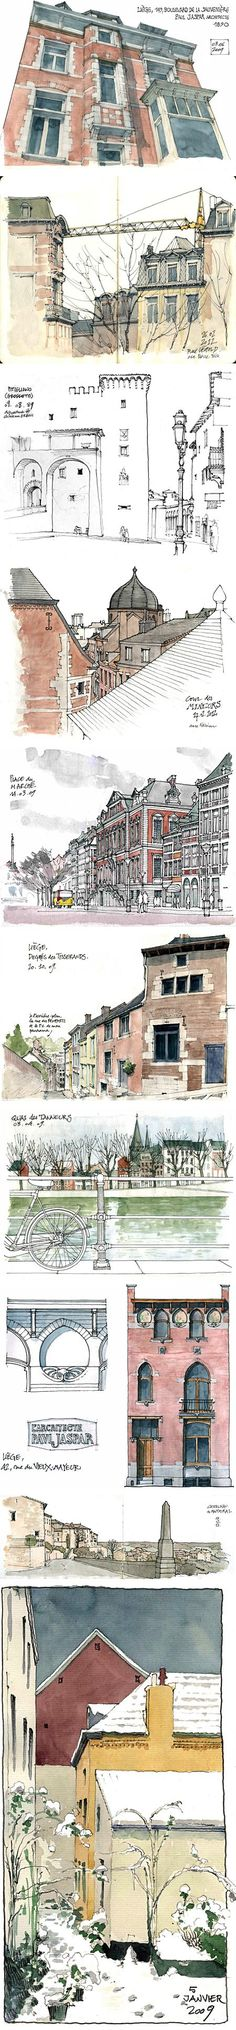 Gérard Michel ----> Follow board on : http://pinterest.com/riccai/architectural-representation/